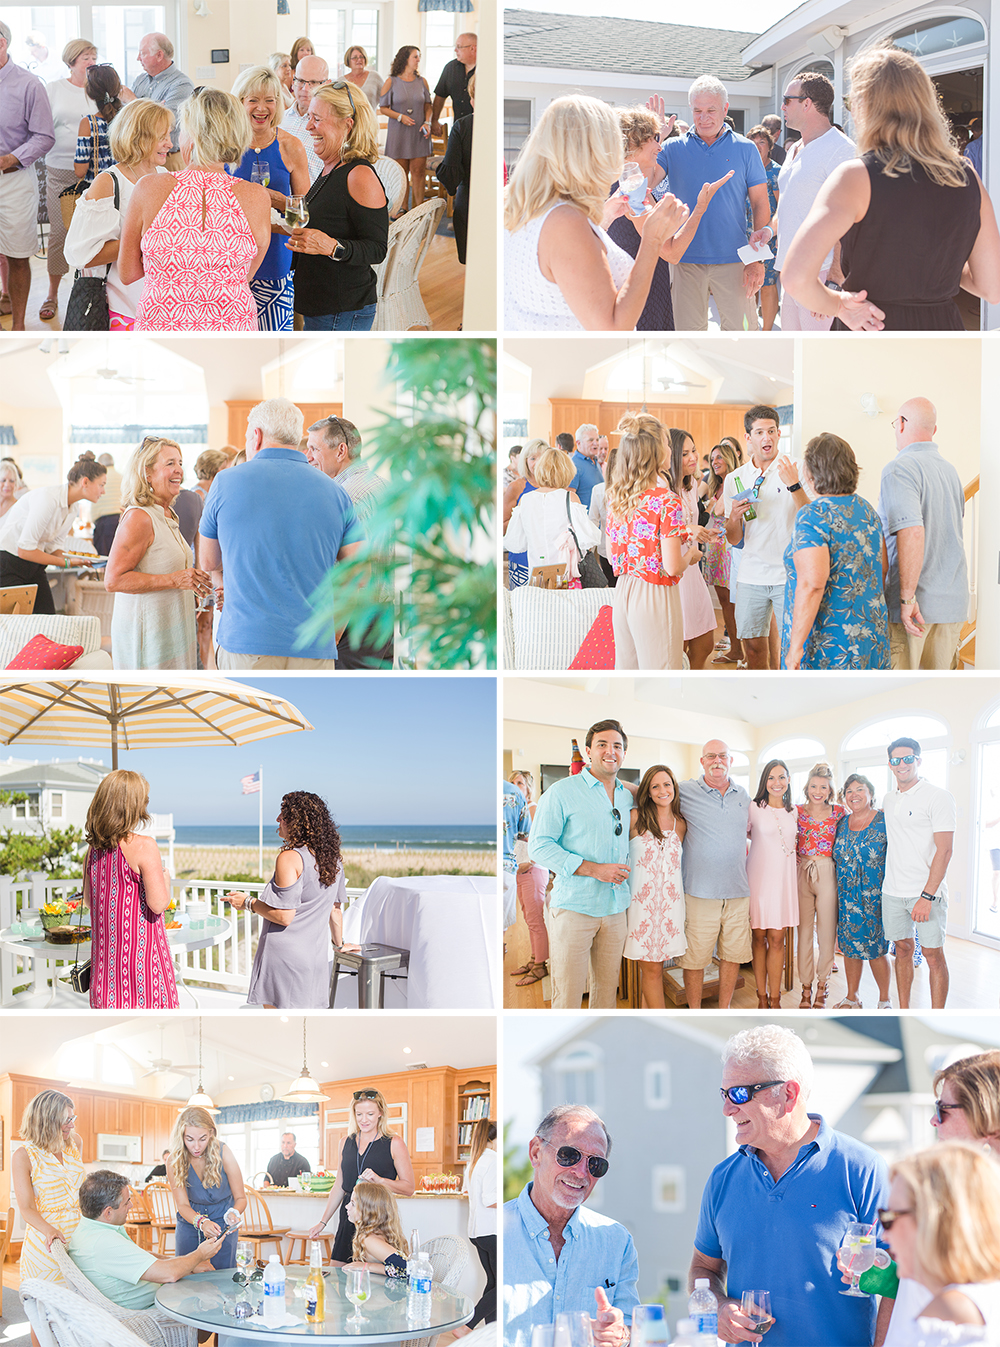 Cocktail Hour at Vow Renewal